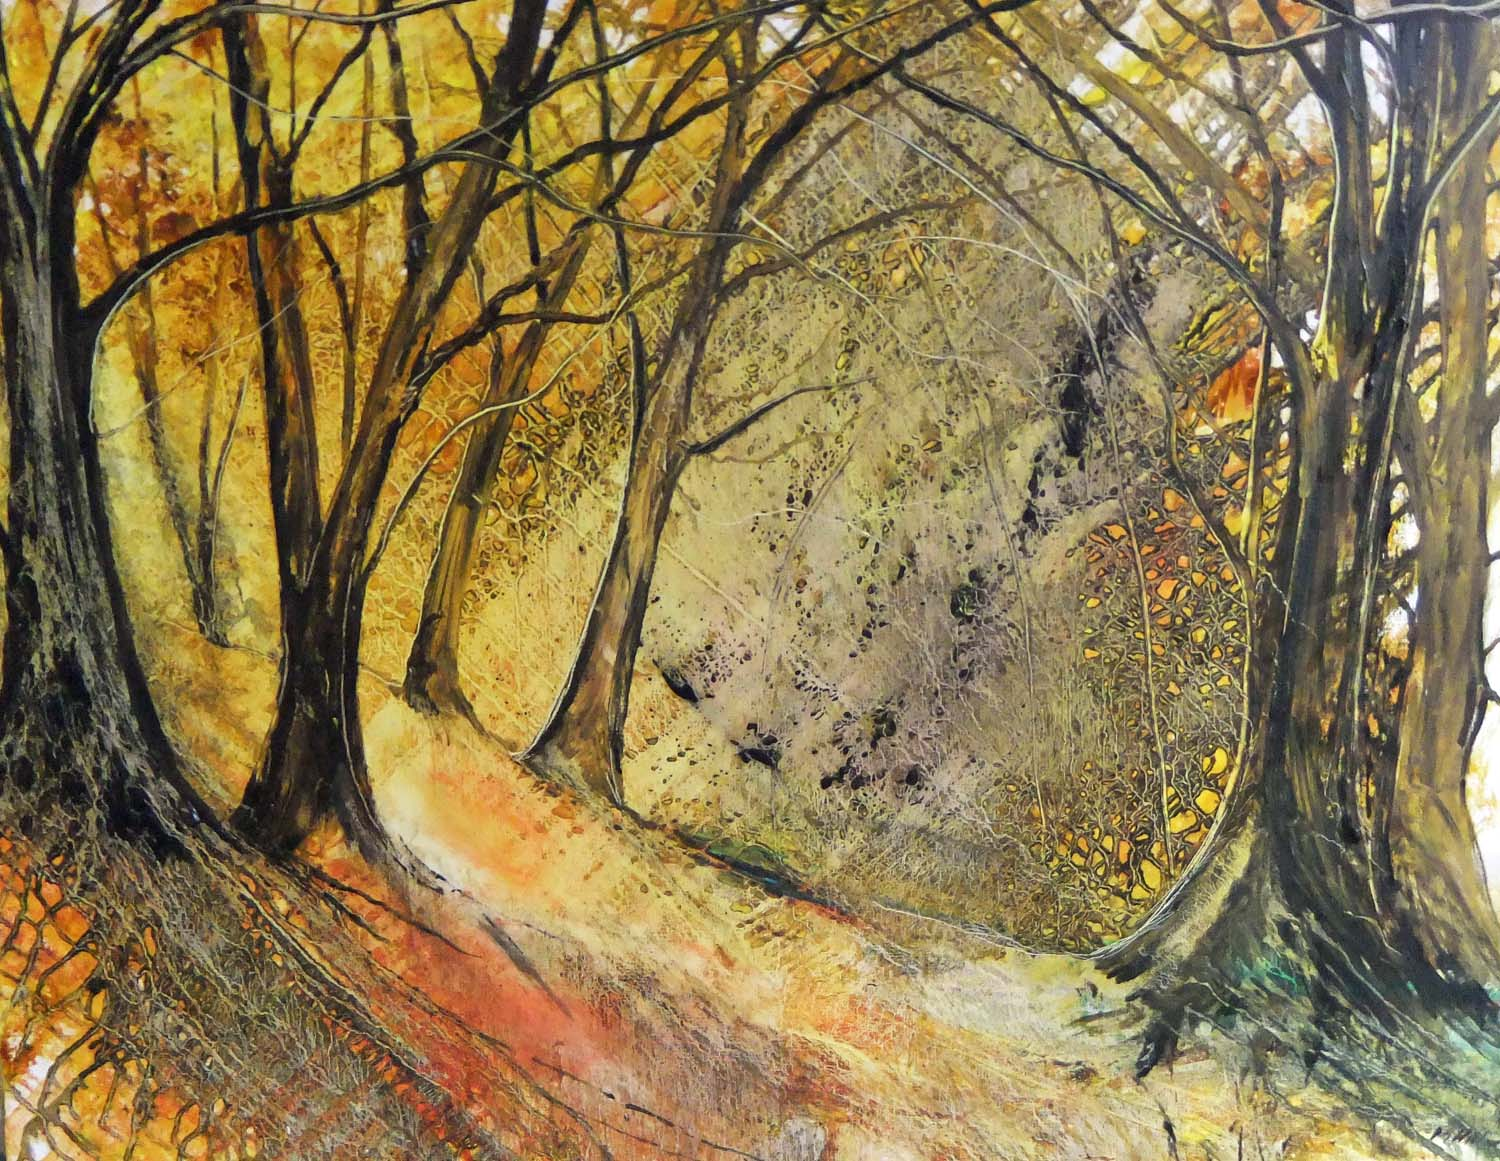 Sunburst Woodland by Peter Hill